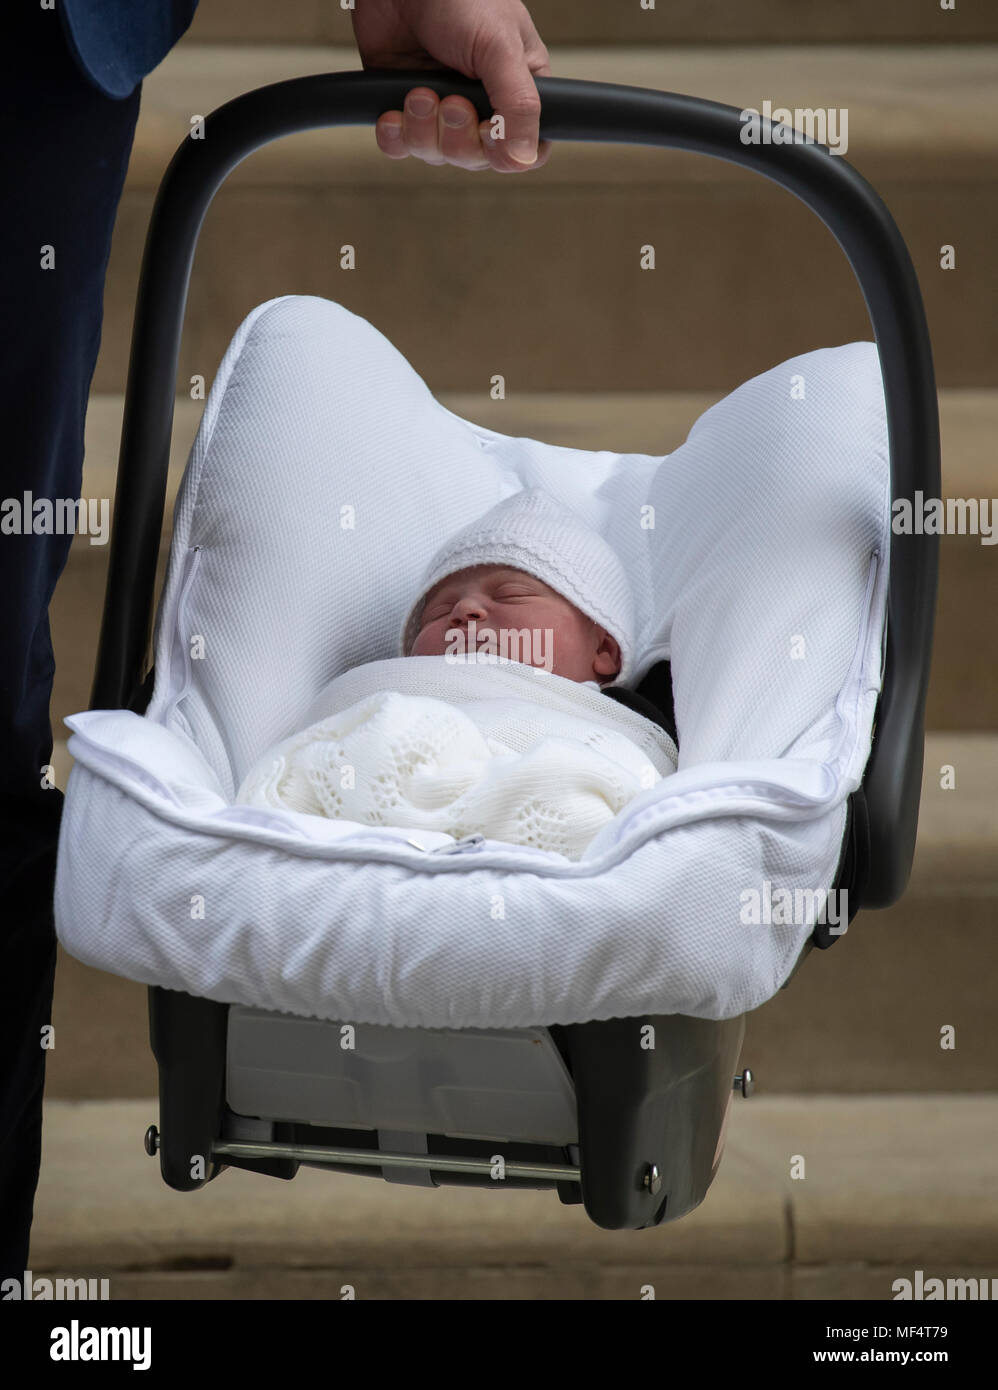 23rd April 2018 London UK Prince William's and Catherine, Duchess of Cambridge's new born, named son leaving St Mary's Hospital's Linda Wing. Stock Photo